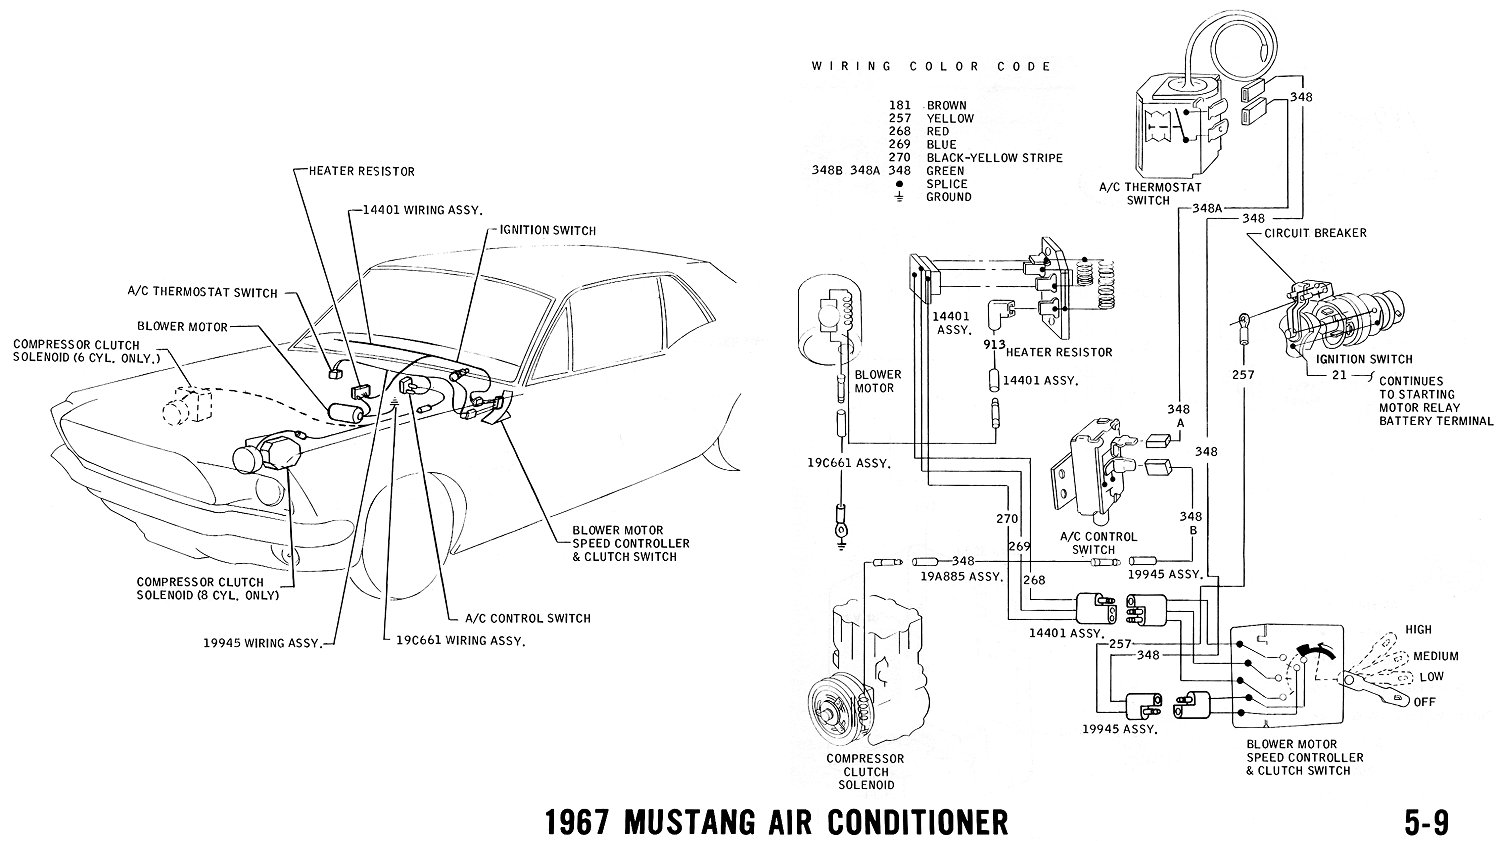 67ac 1967 mustang wiring and vacuum diagrams average joe restoration 1967 mustang turn signal wiring diagram at cos-gaming.co